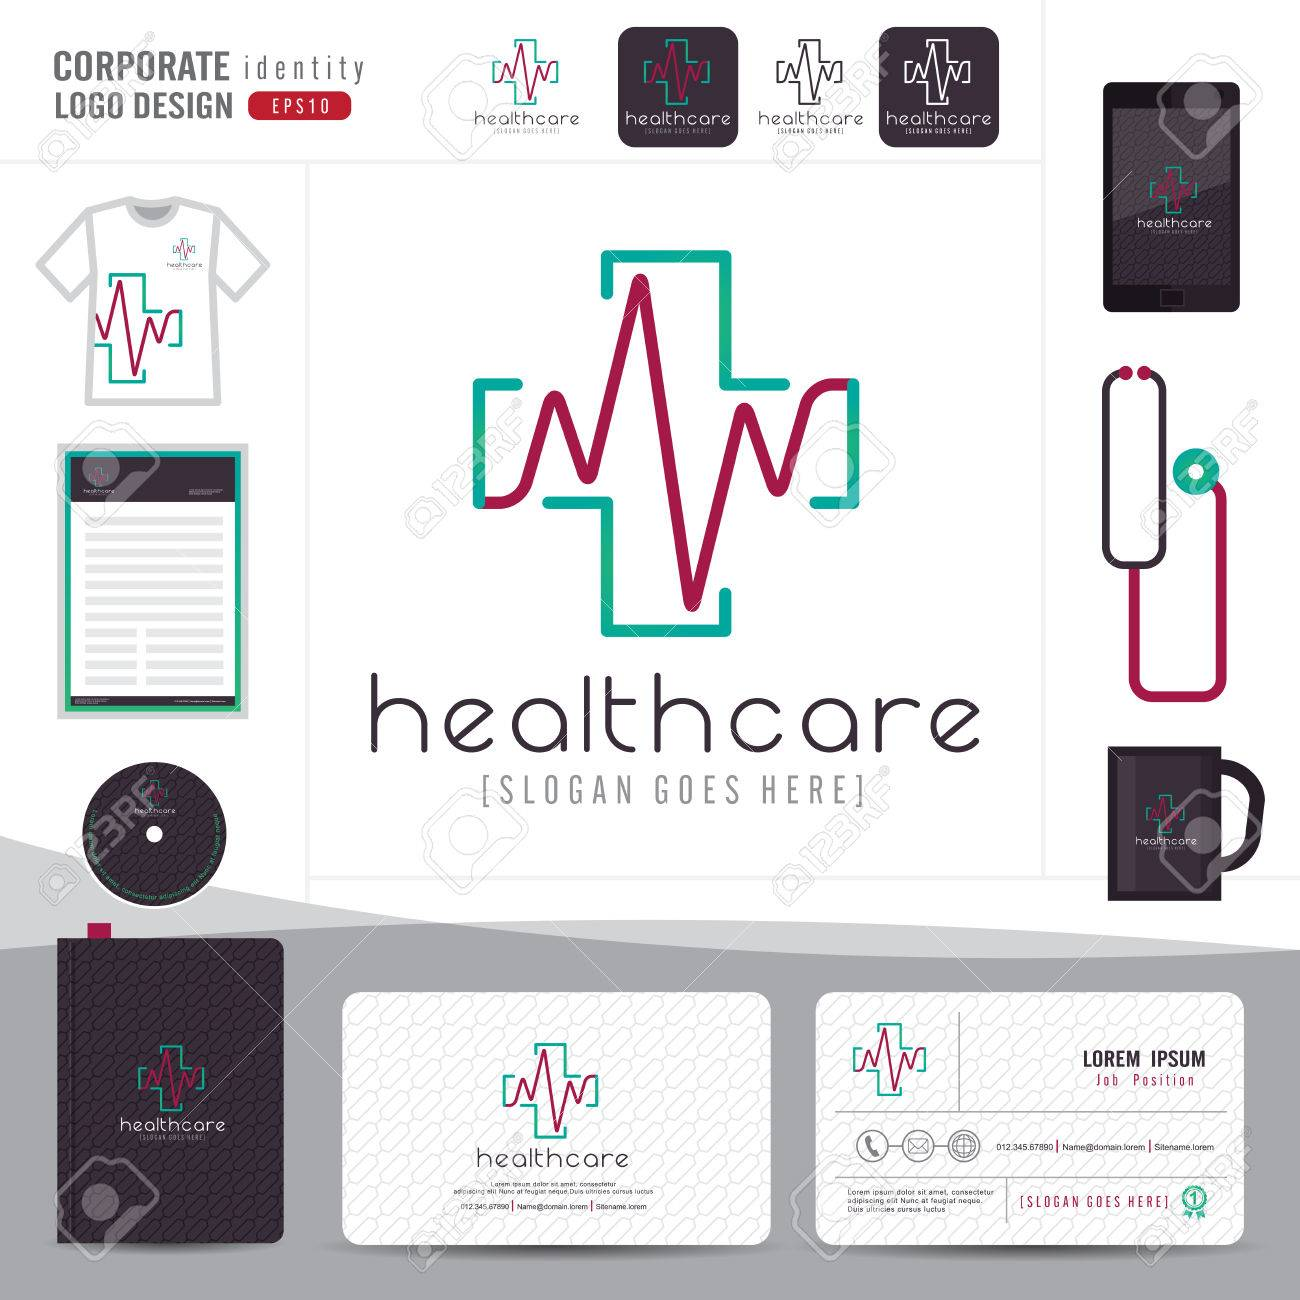 Health Care Business Cards Image collections - Free Business Cards